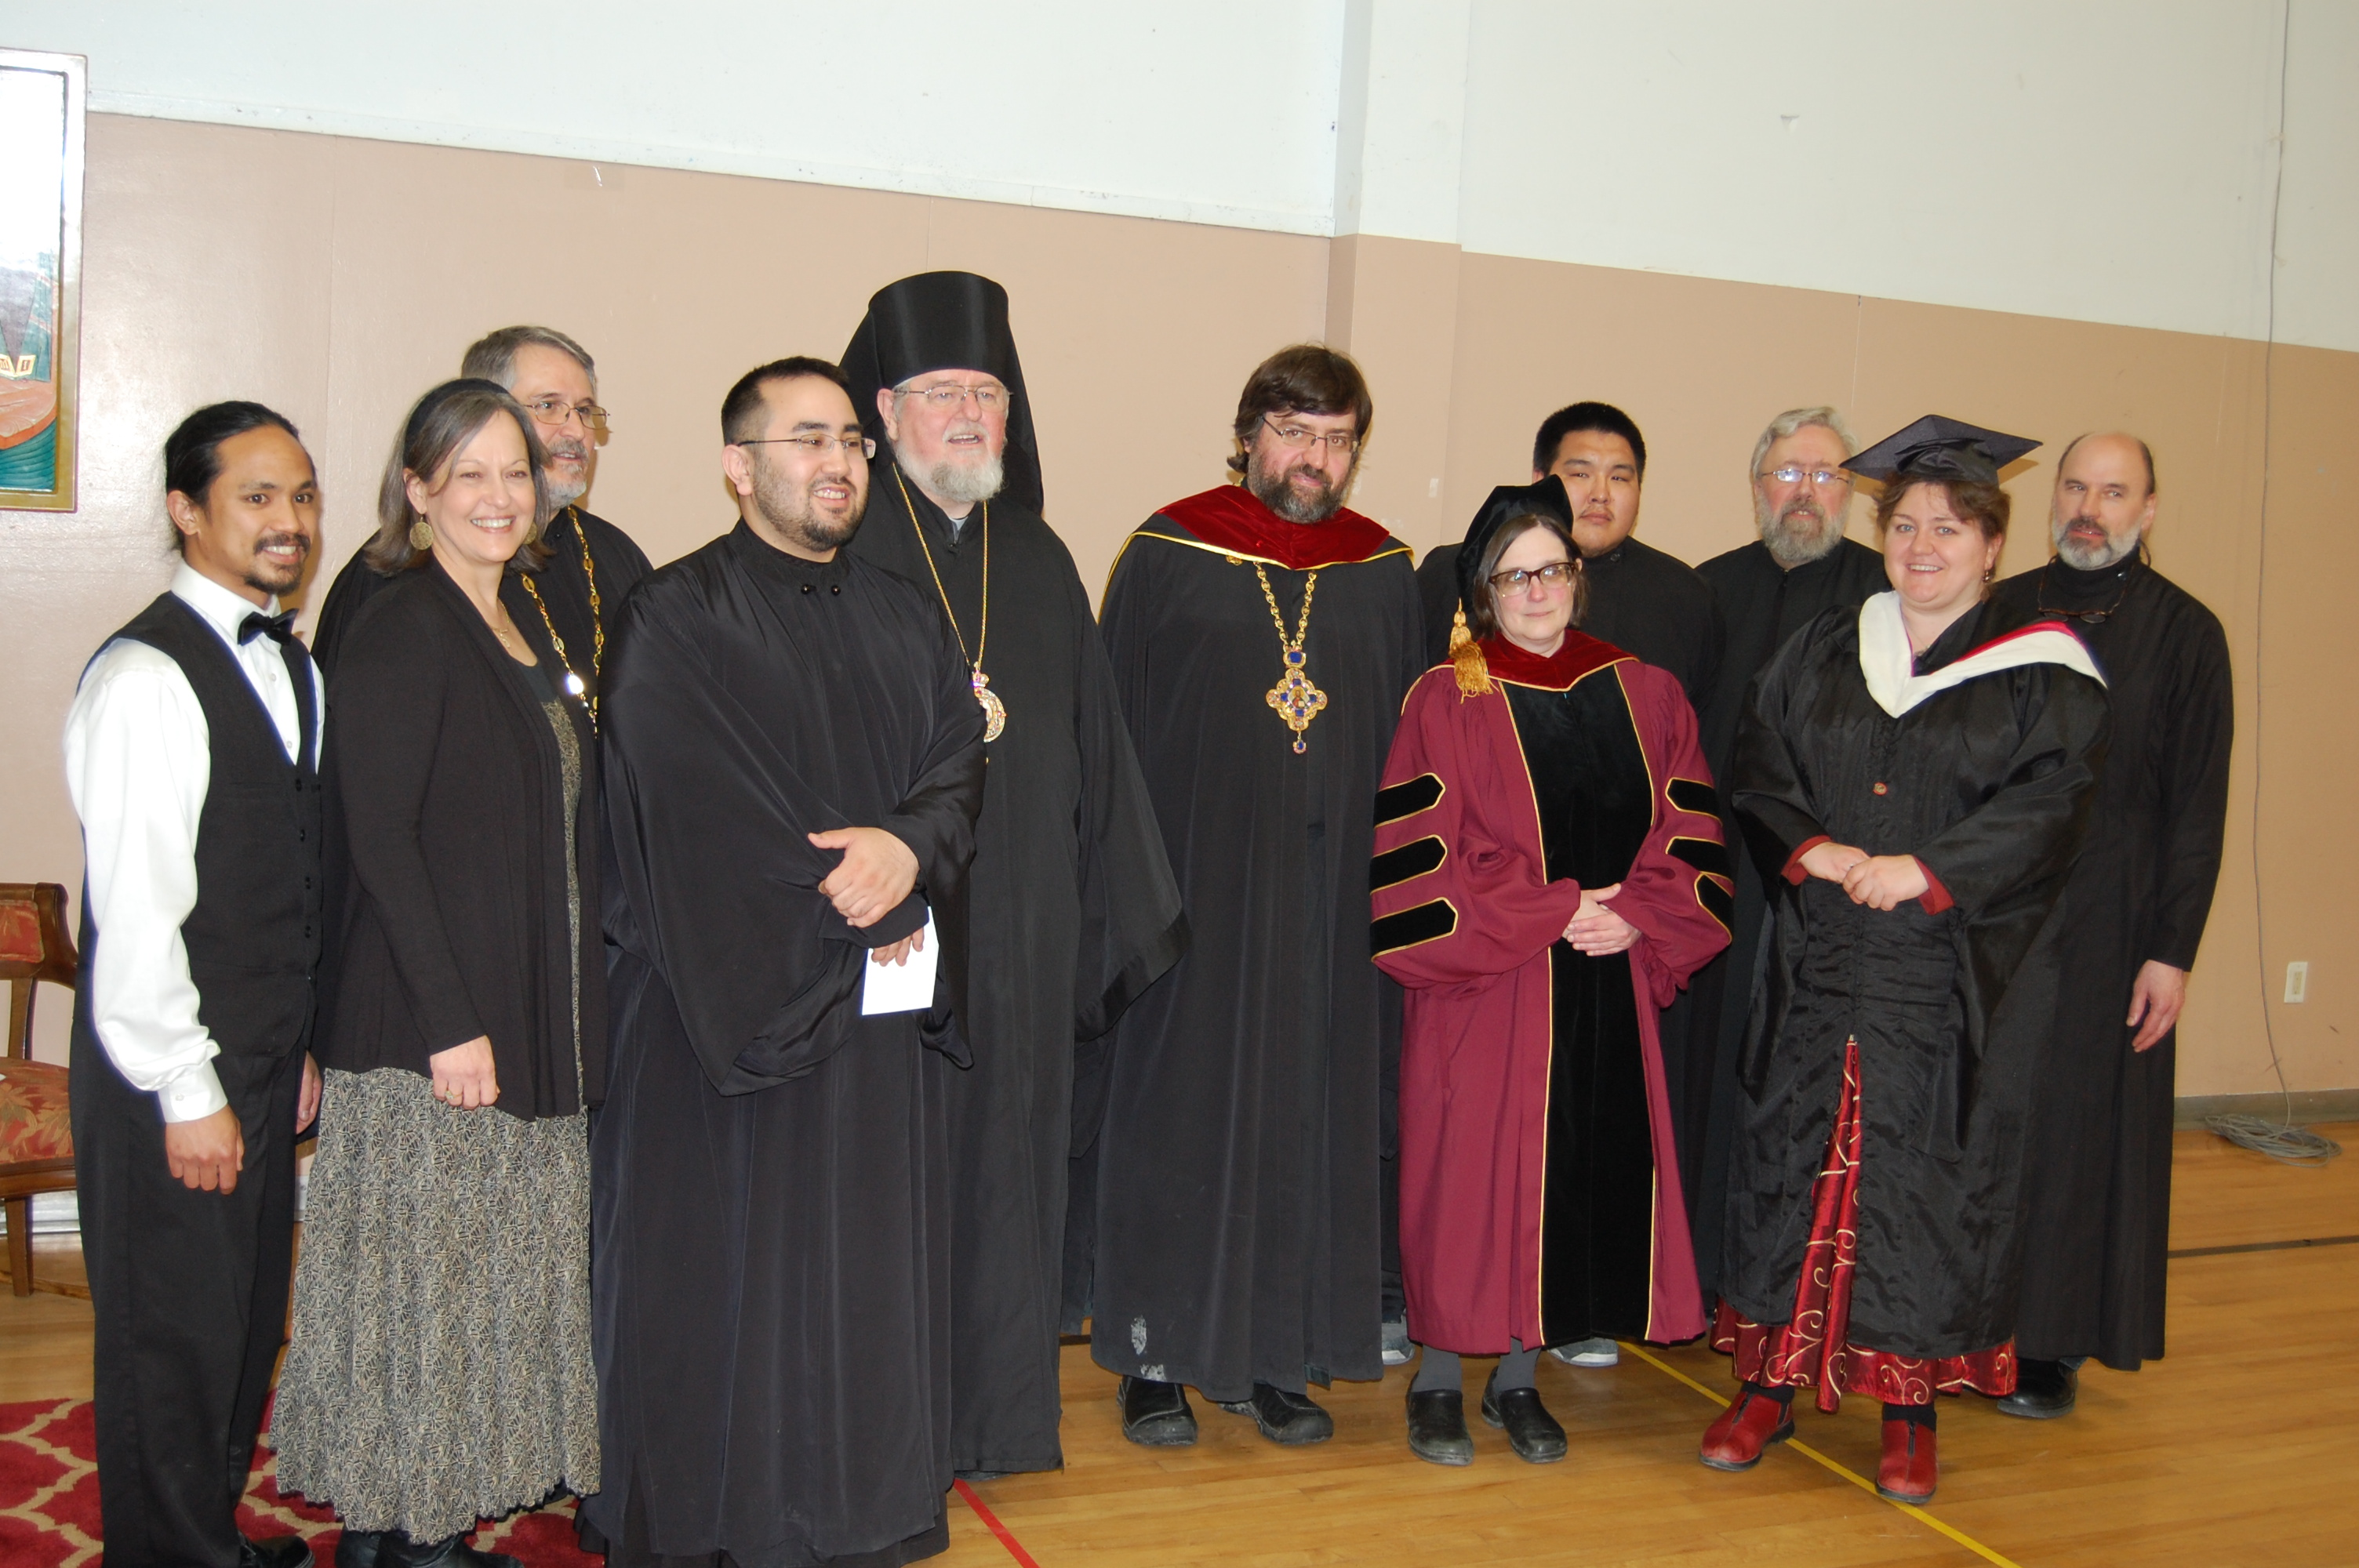 St. Herman's Faculty During the 2015 Graduation